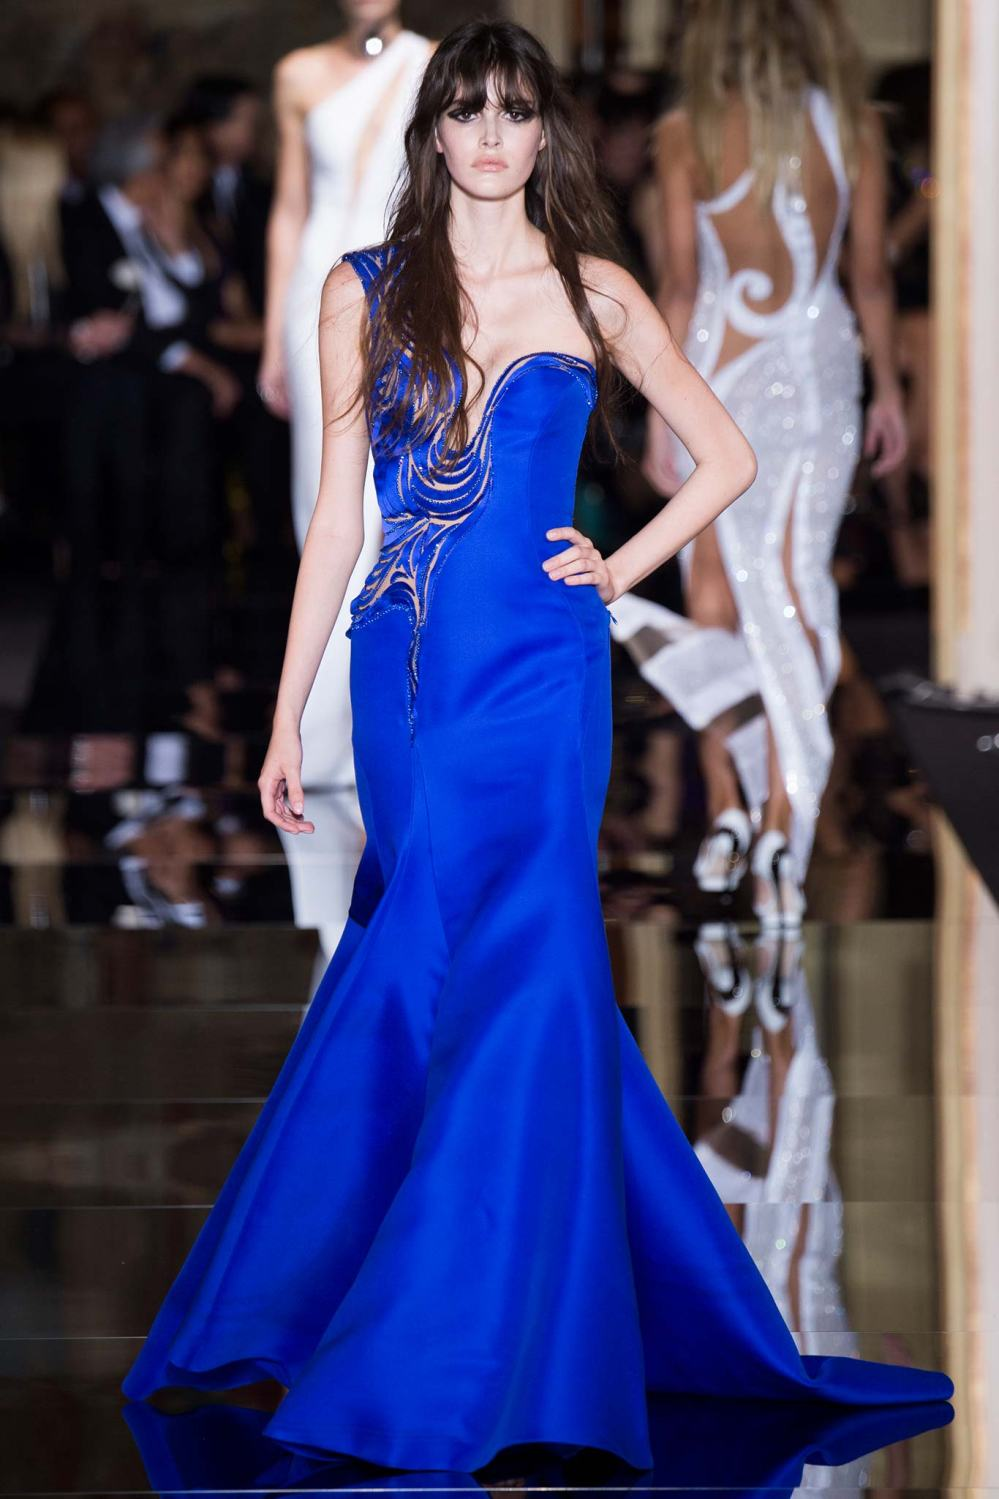 Atelier Versace, Spring/Summer 2015 Look 42 Model : Vanessa Moody Photo: Kim Weston Arnold/Indigitalimages.com